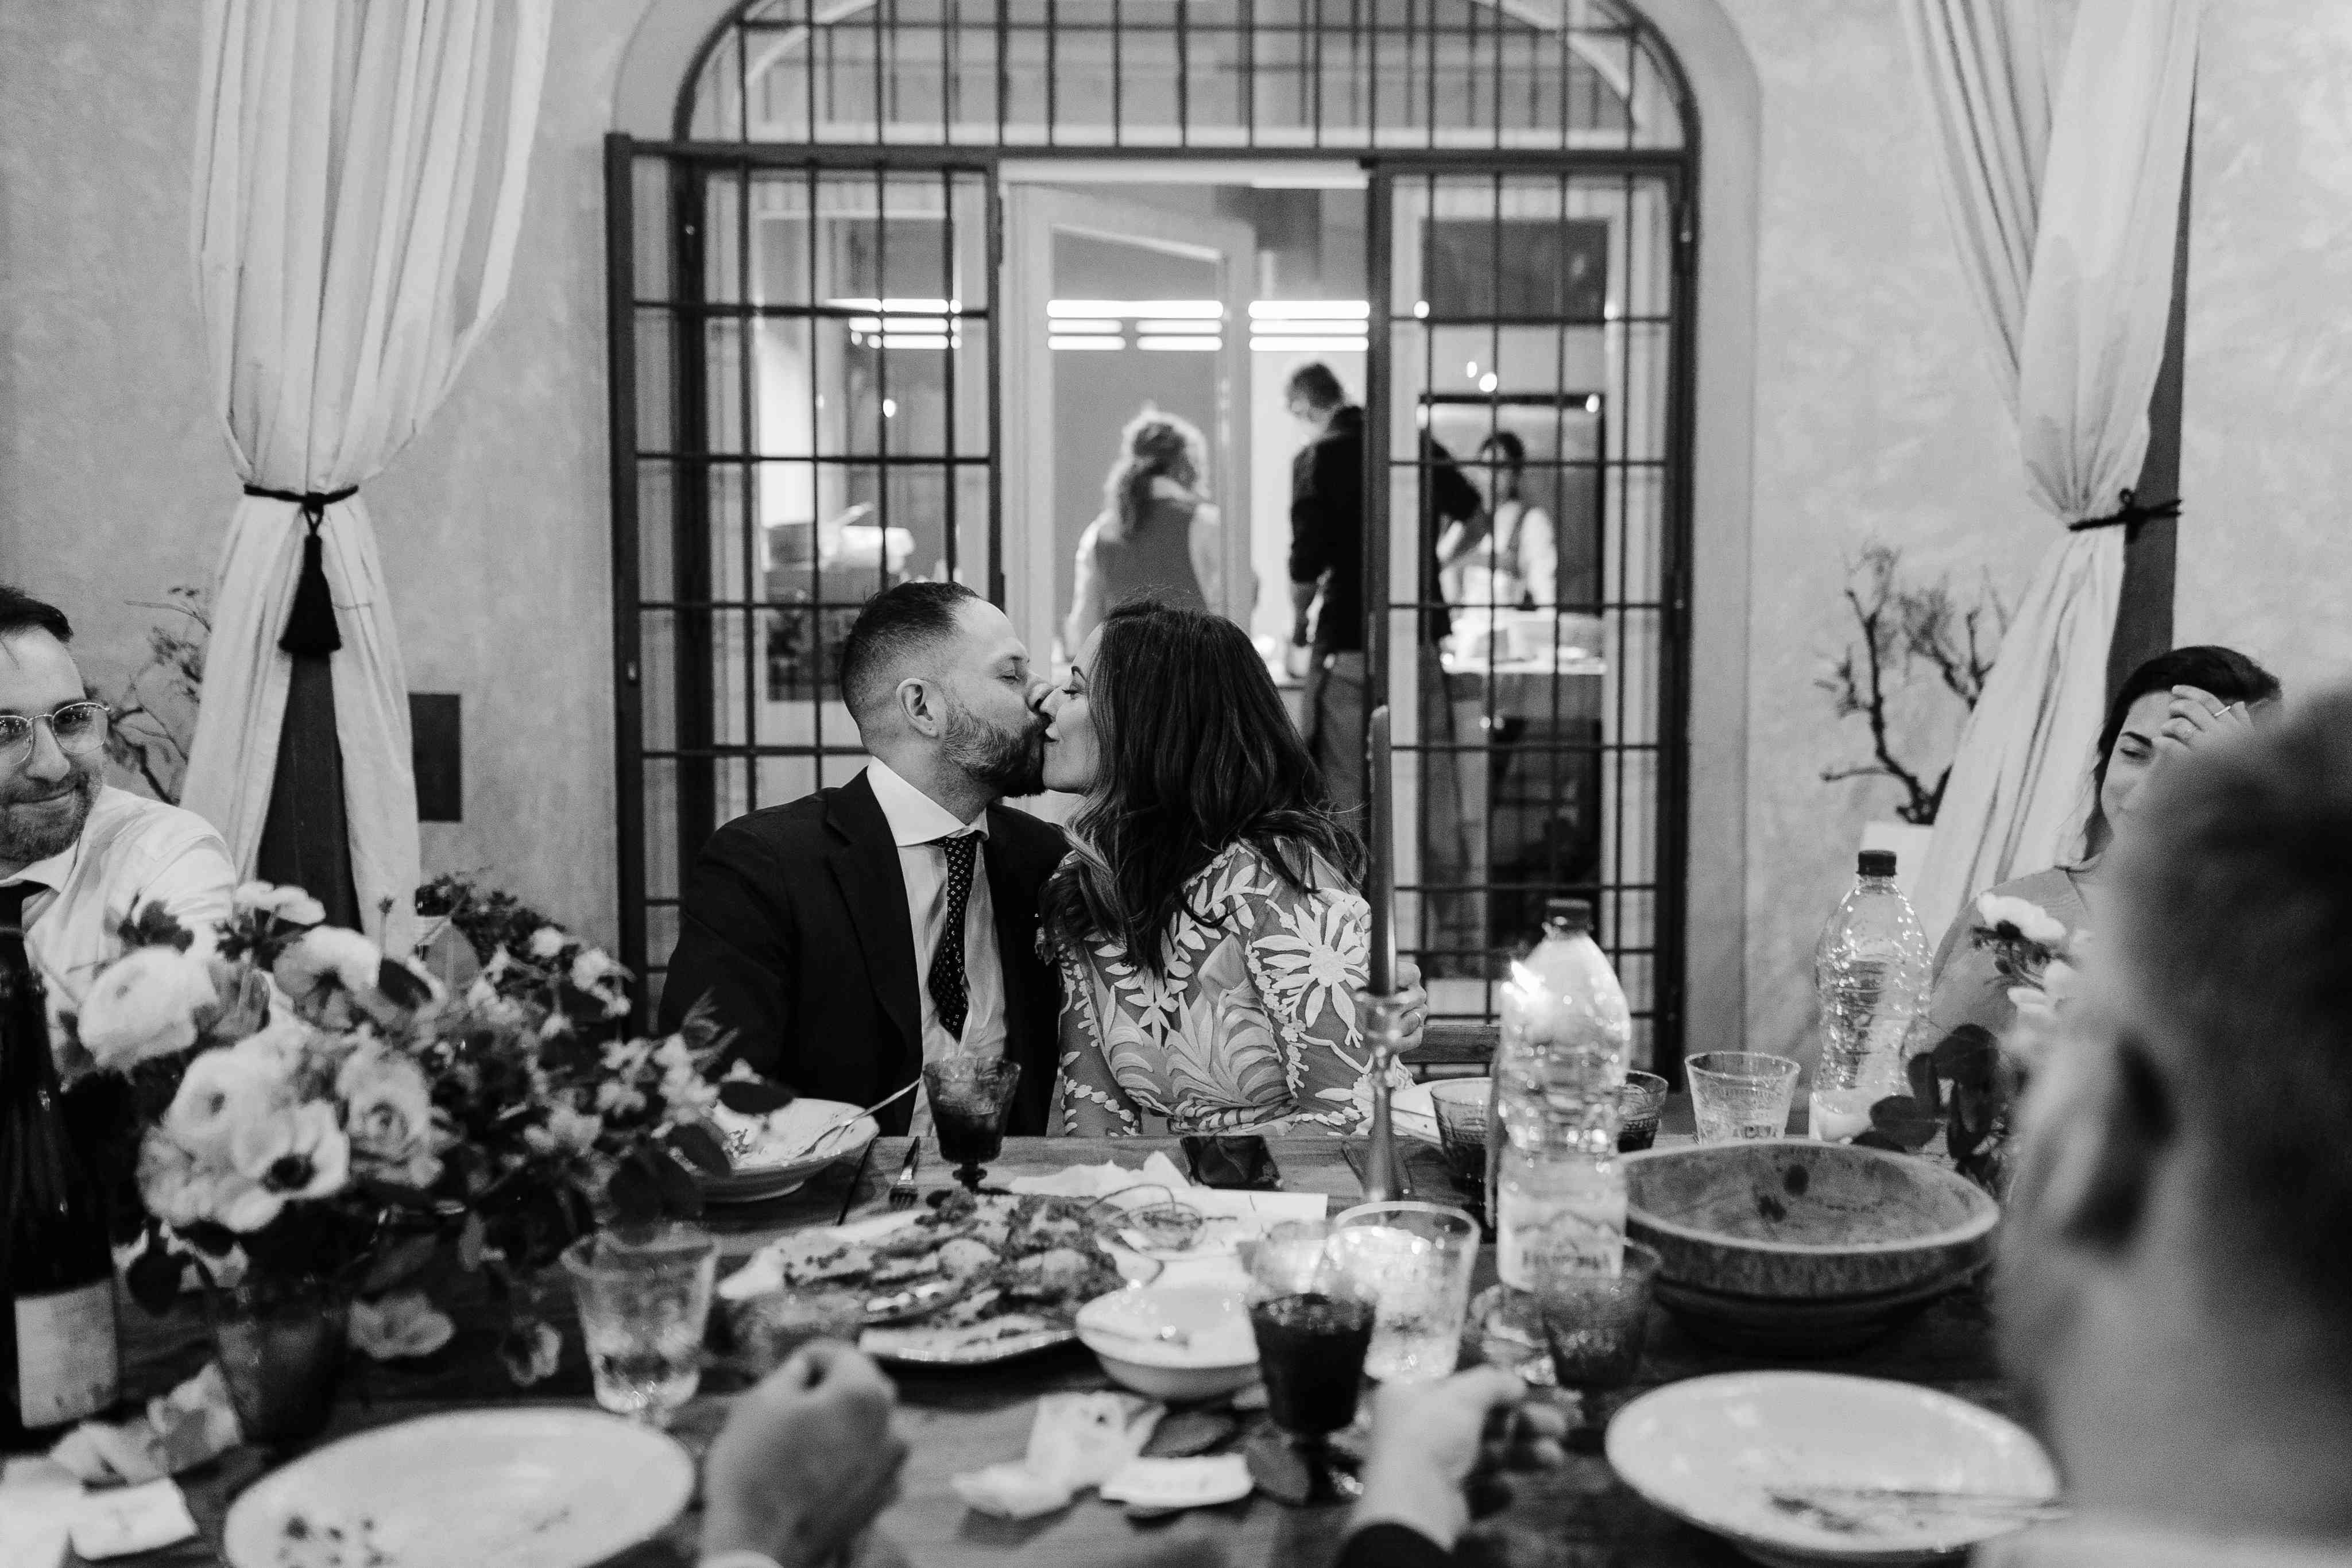 <p>bride and groom kissing at dinner</p><br><br>